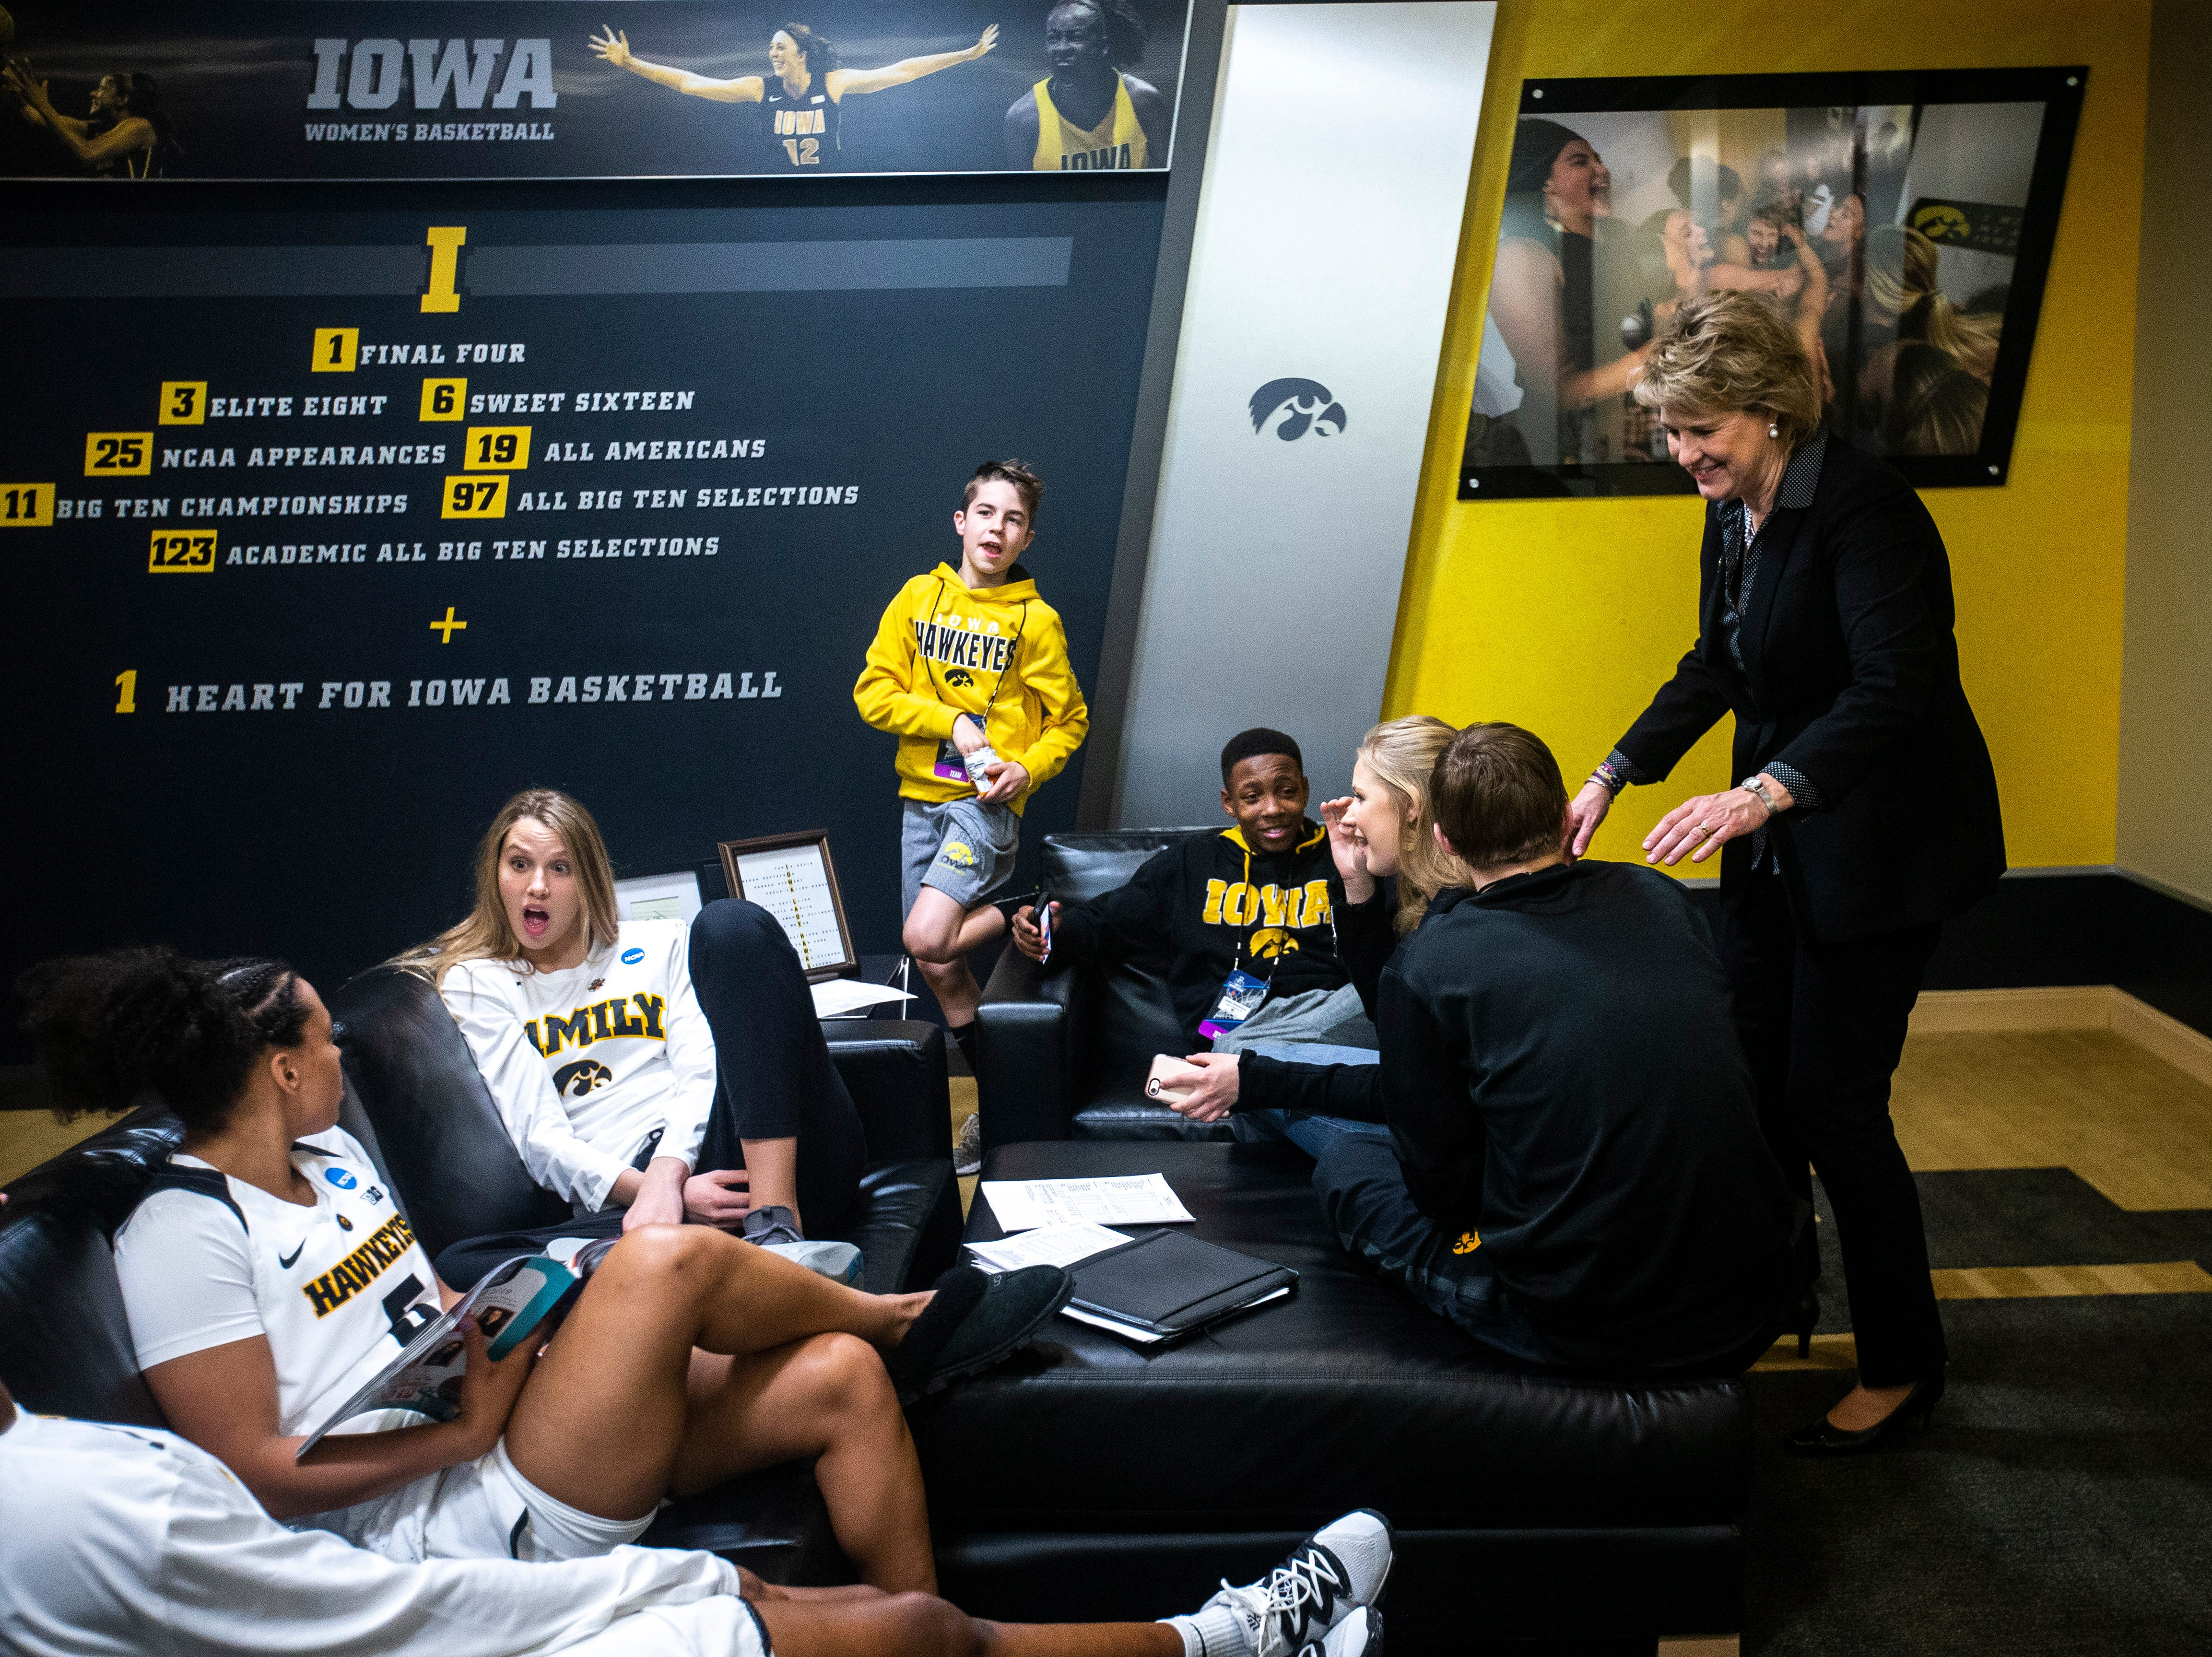 Iowa head coach Lisa Bluder talks with her children in the locker room after a NCAA women's basketball tournament second-round game, Sunday, March 24, 2019, at Carver-Hawkeye Arena in Iowa City, Iowa.